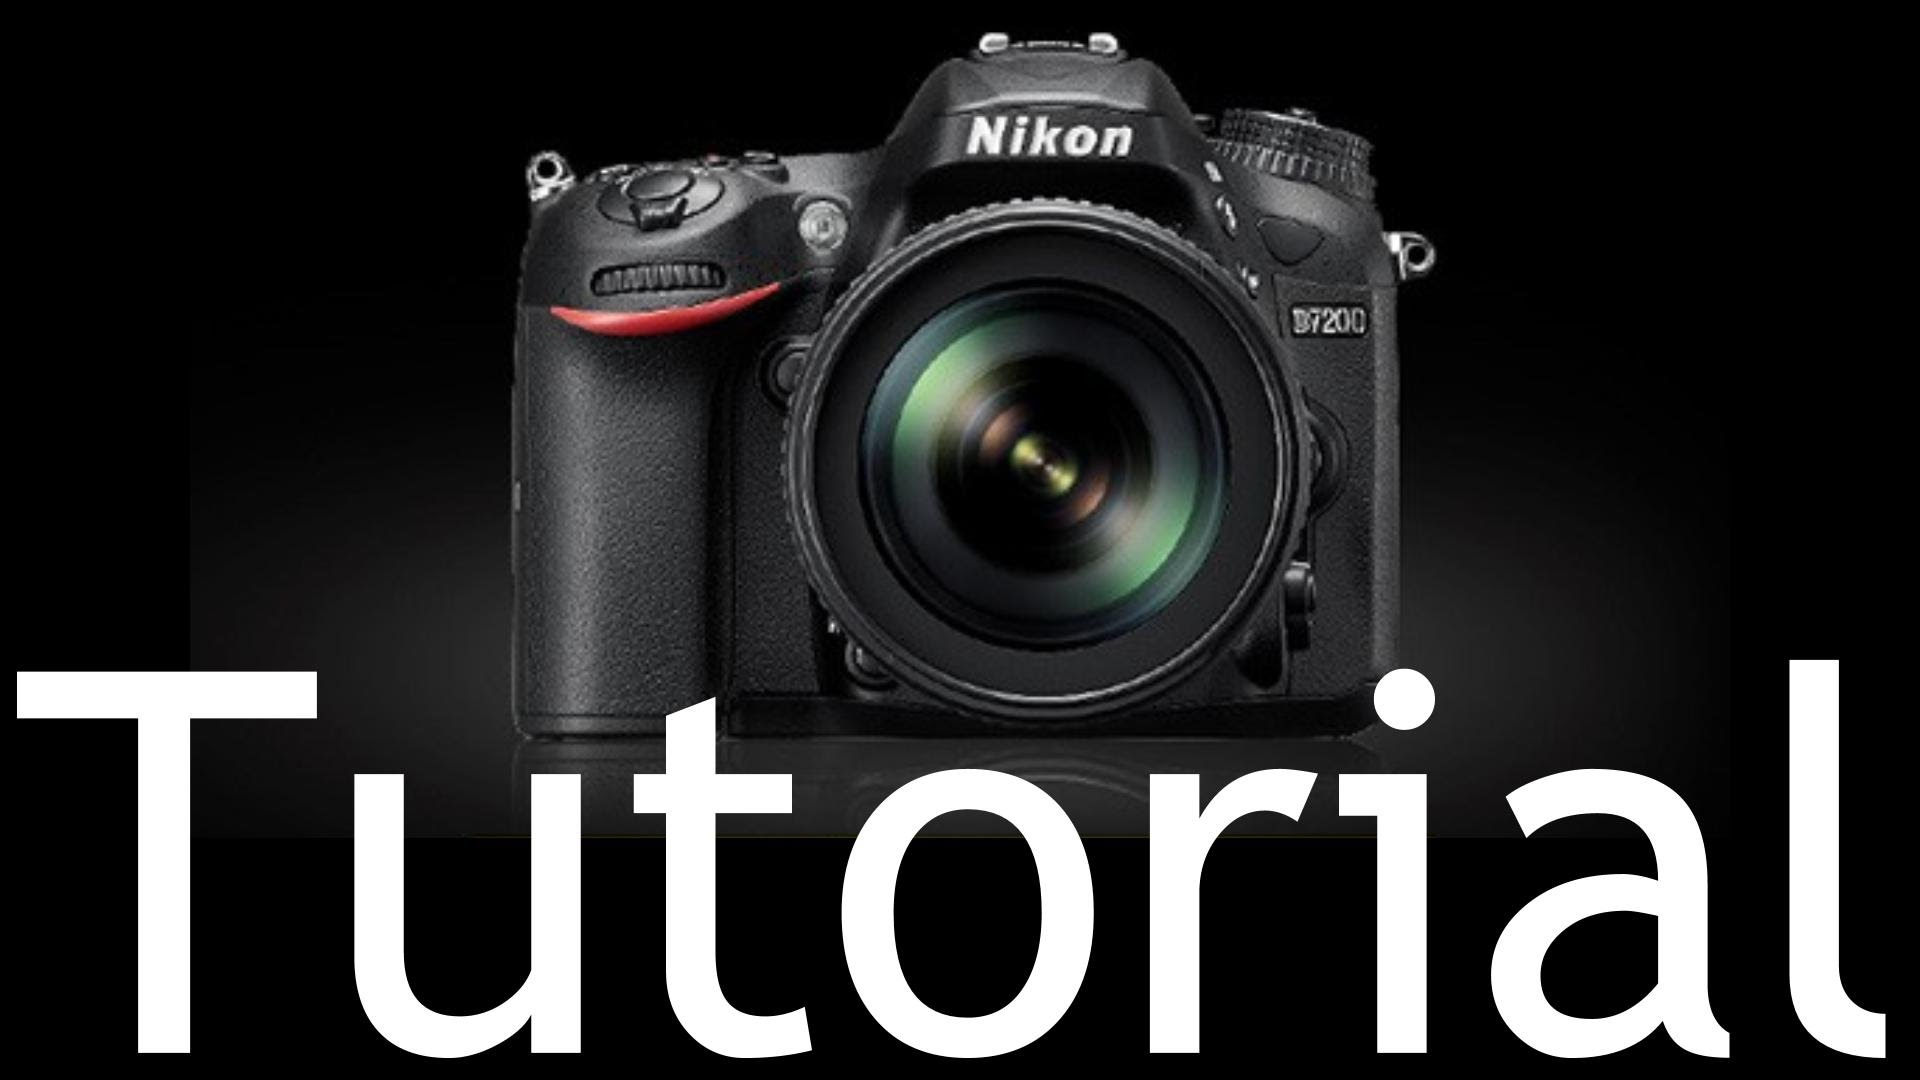 7200 Overview Training Tutorial (also for Nikon D7100)